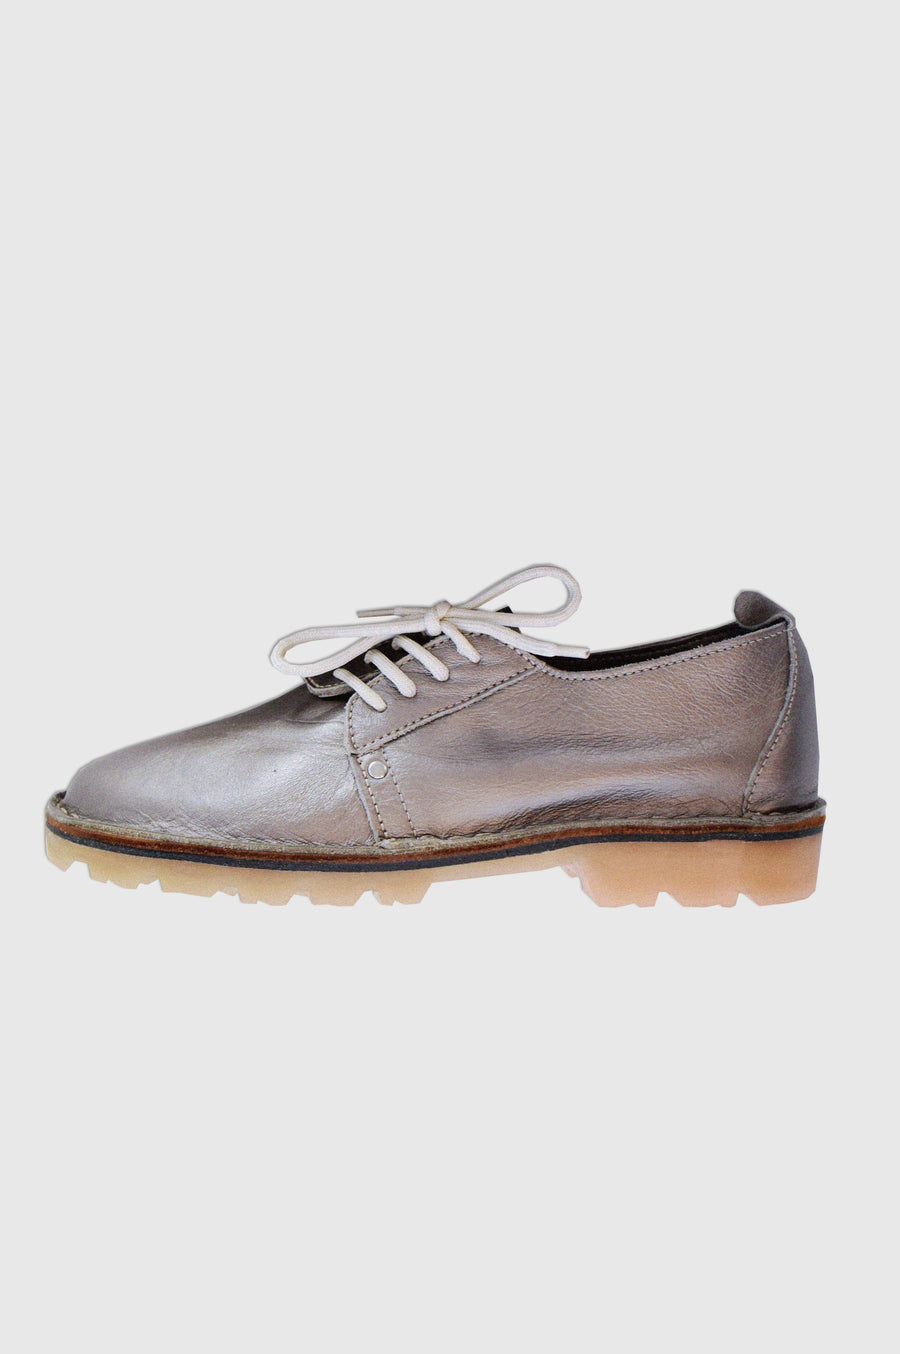 SHOES | SIDE LACE UP VELLIES | METALLIC PEWTER